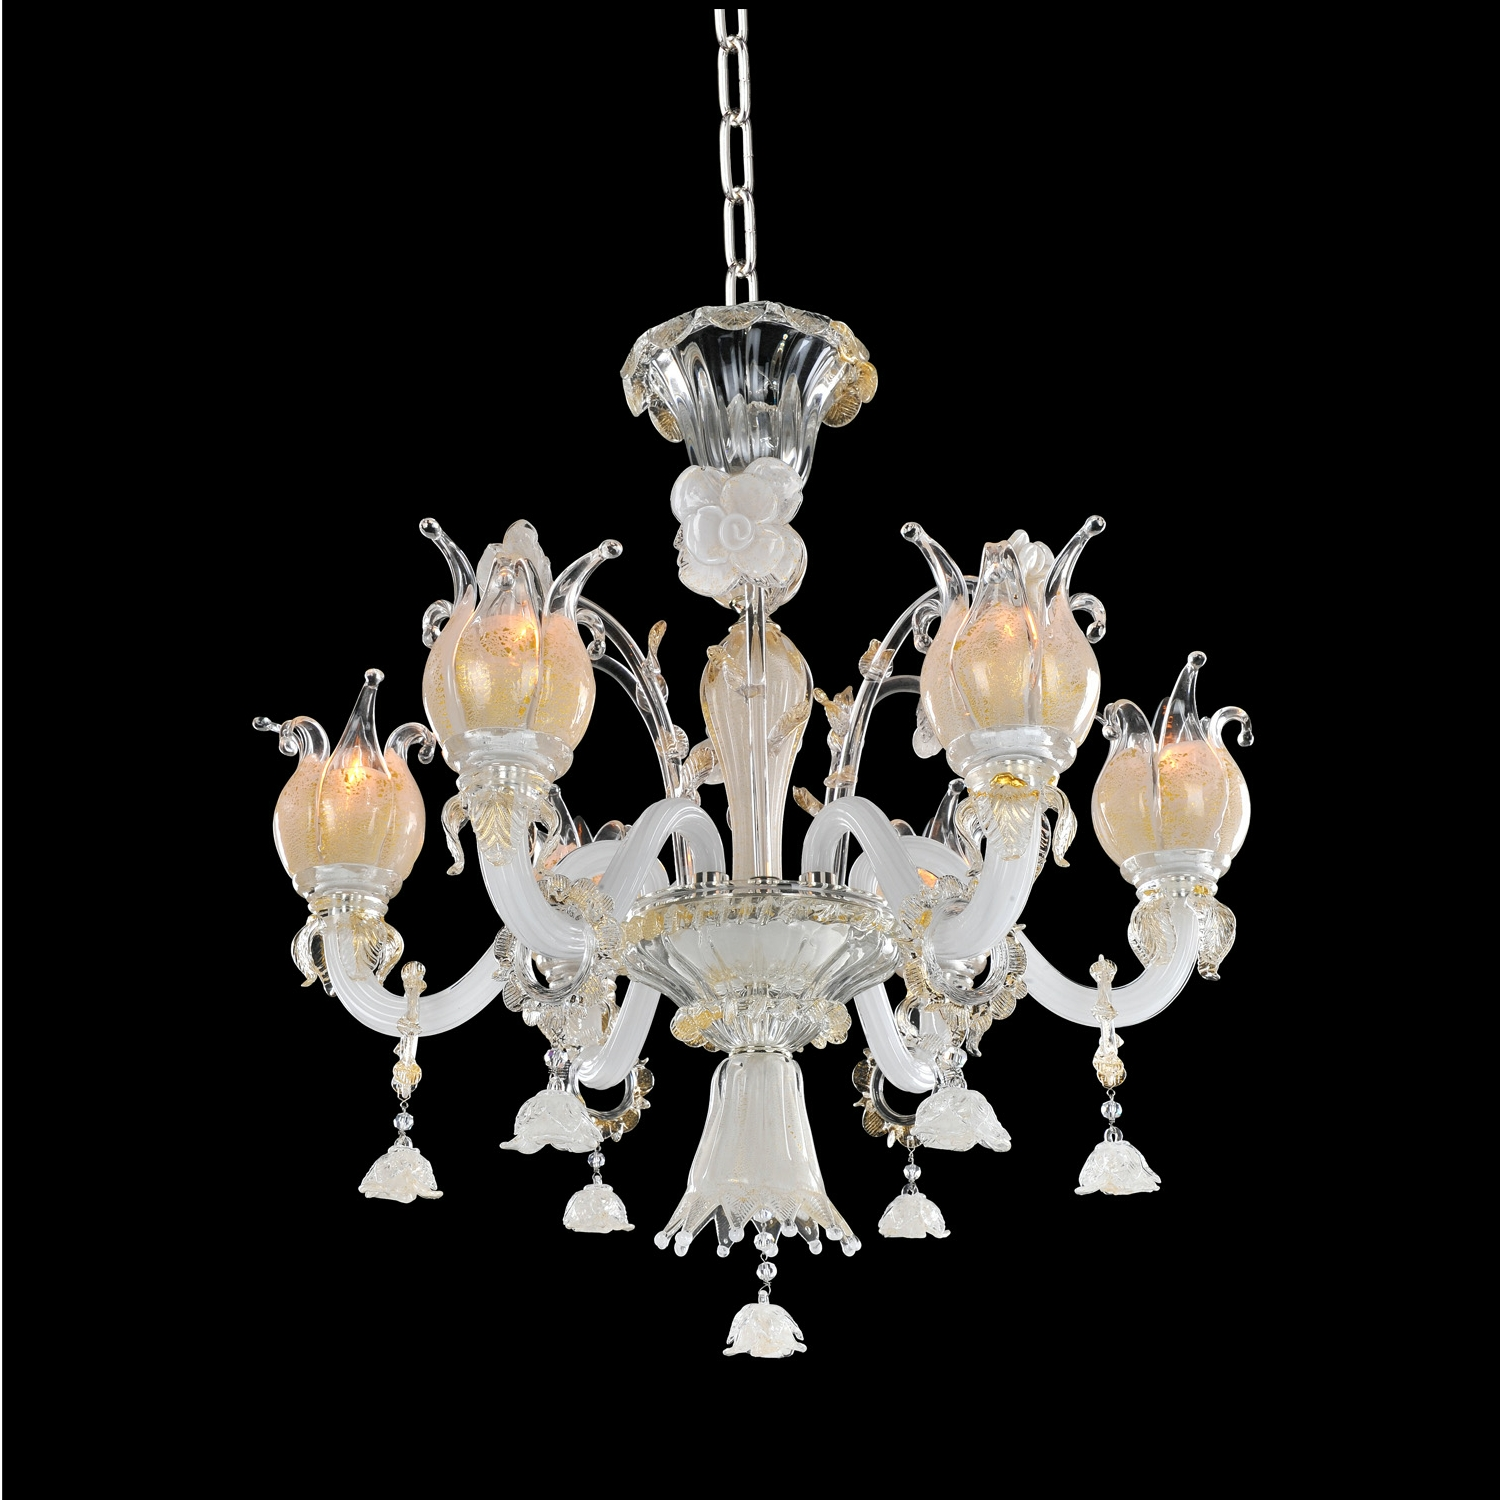 Artemisia 6 Light Chandelier